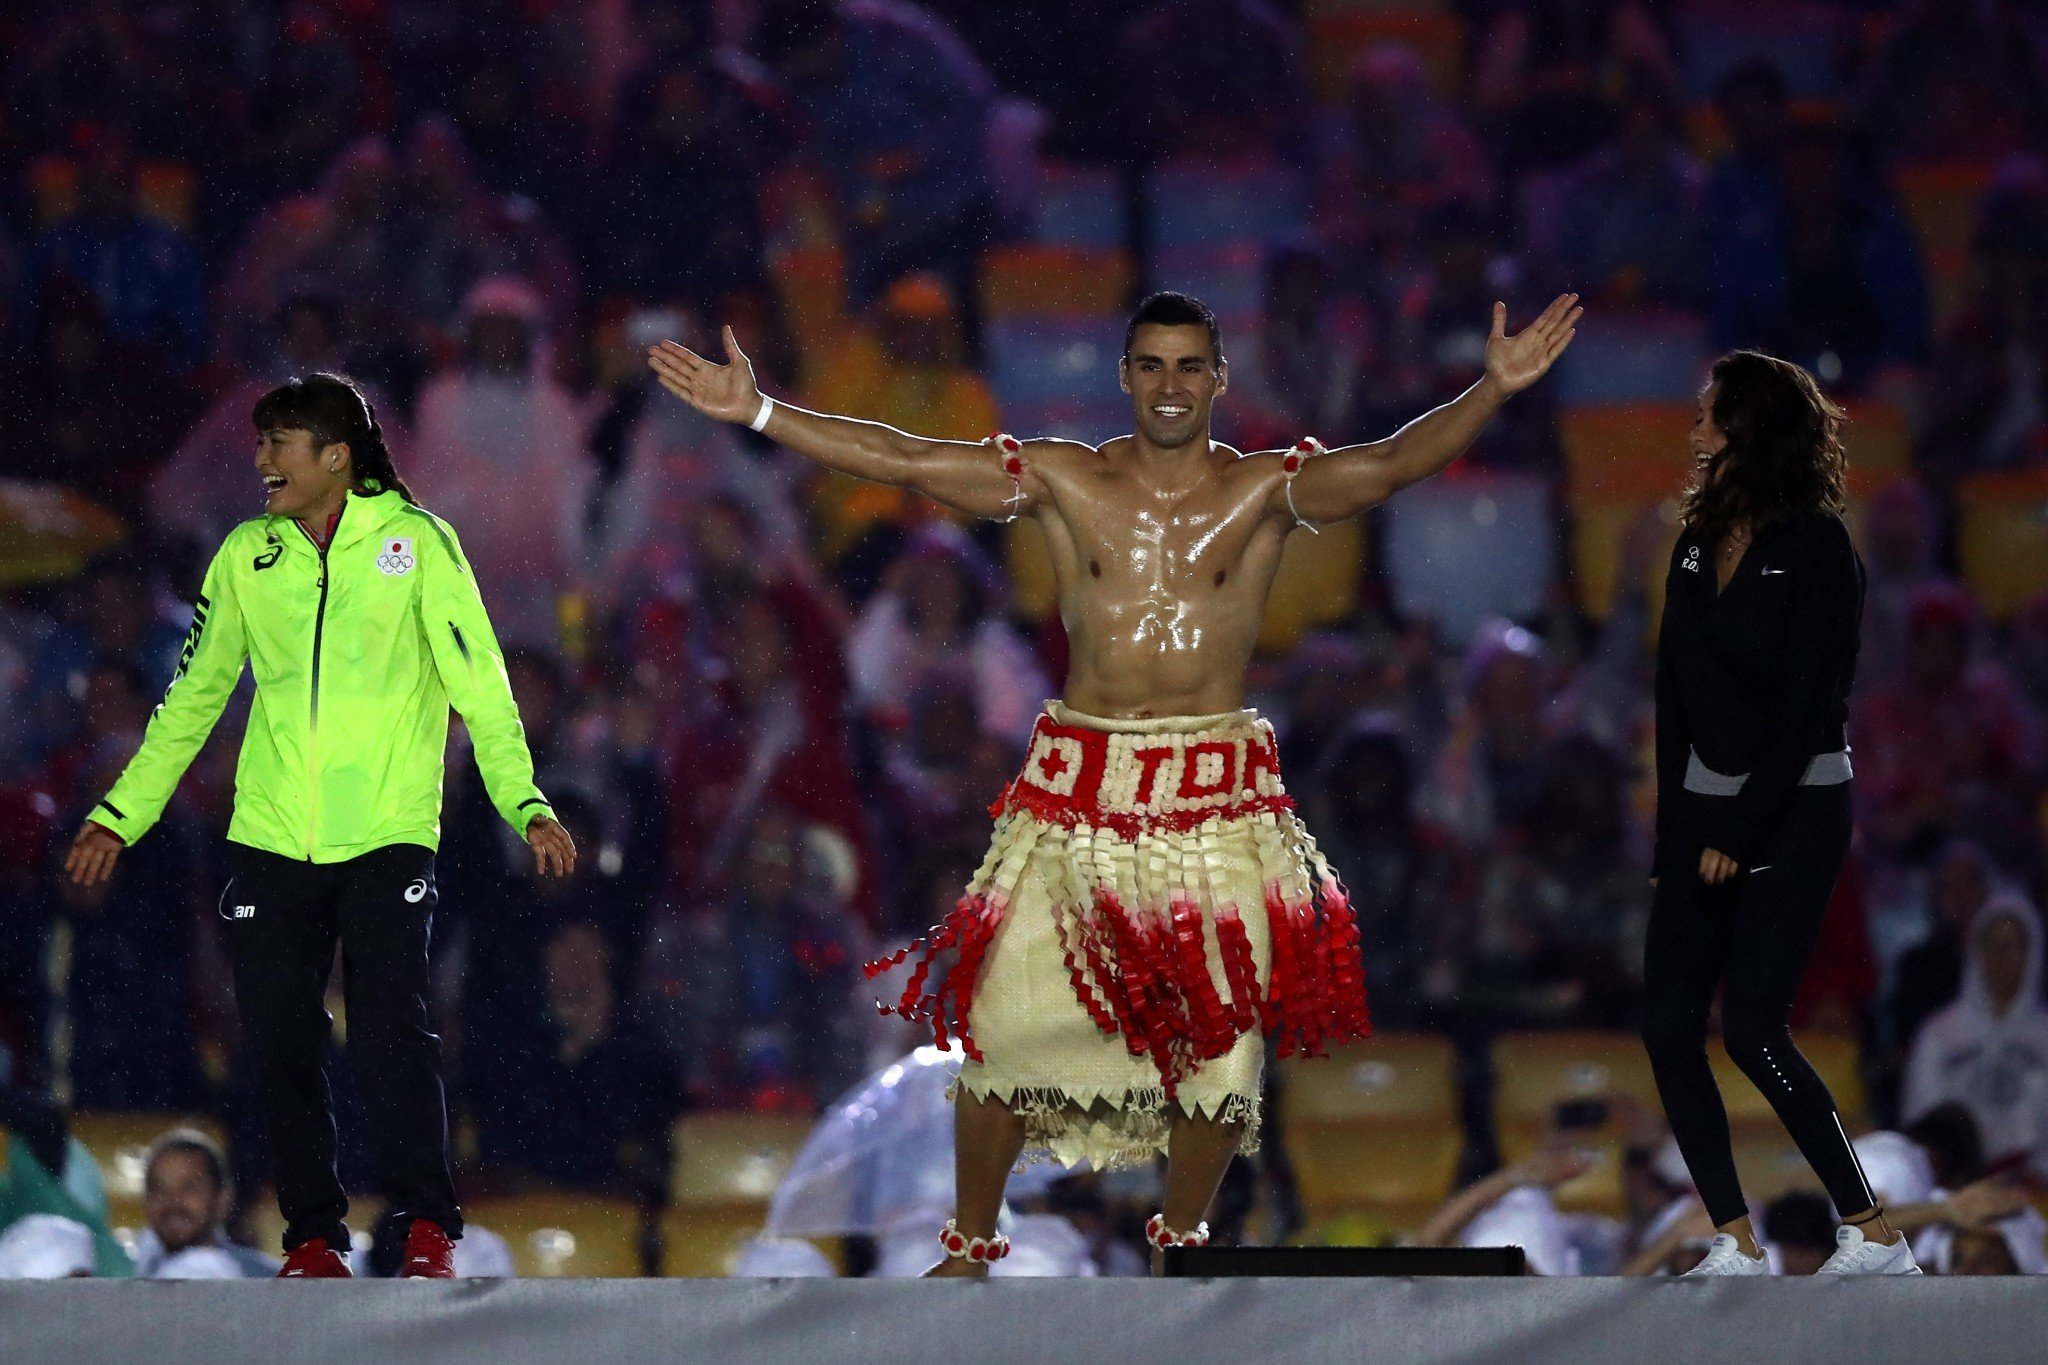 Tonga's Pita Taufatofua, who became a sensation during the Rio Summer Games, is eyeing the 2018 Winter Games. (Getty Images)